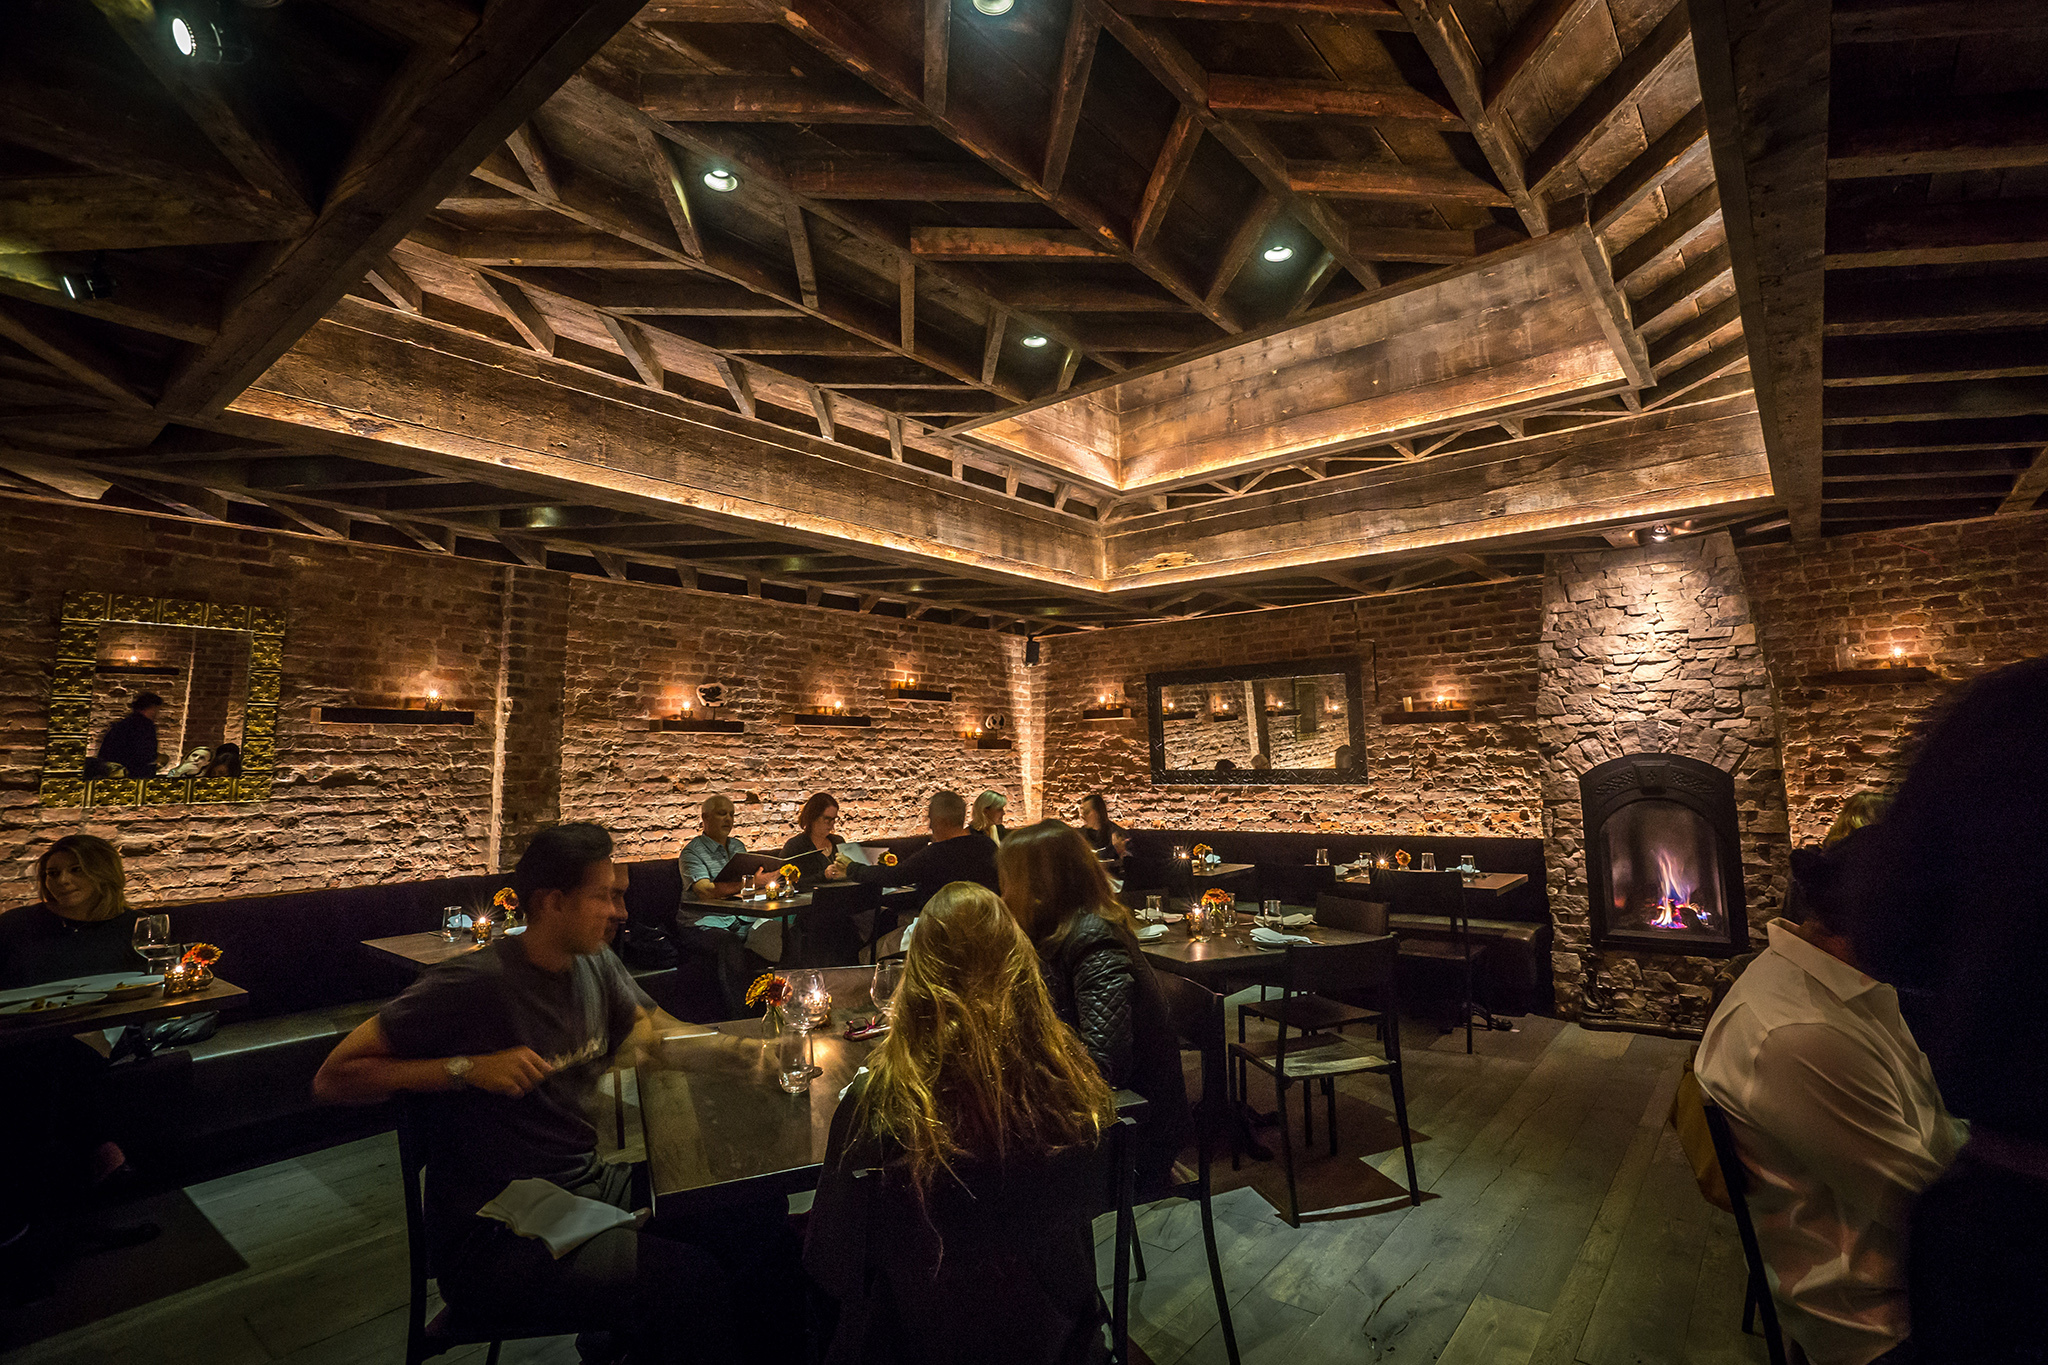 Most romantic restaurants in nyc for date night for Best places to go in nyc at night